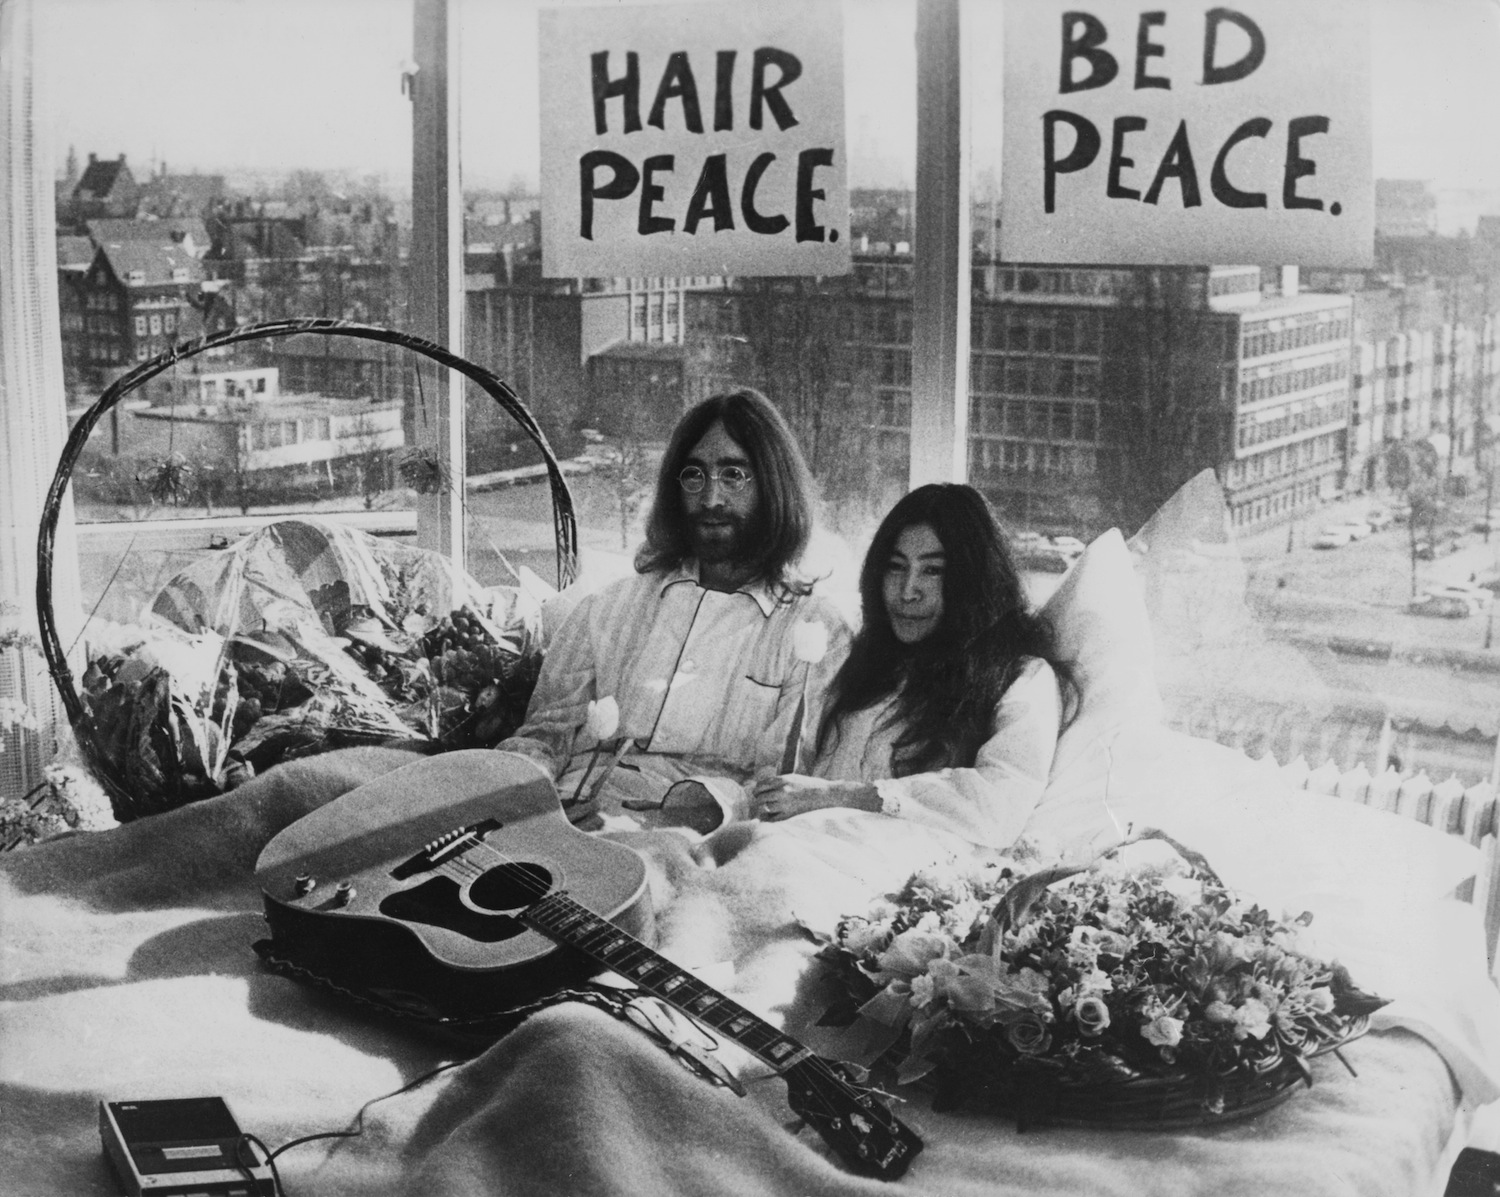 Beatle John Lennon (1940 ? 1980) and his wife of a week Yoko Ono in their bed in the Presidential Suite of the Hilton Hotel,